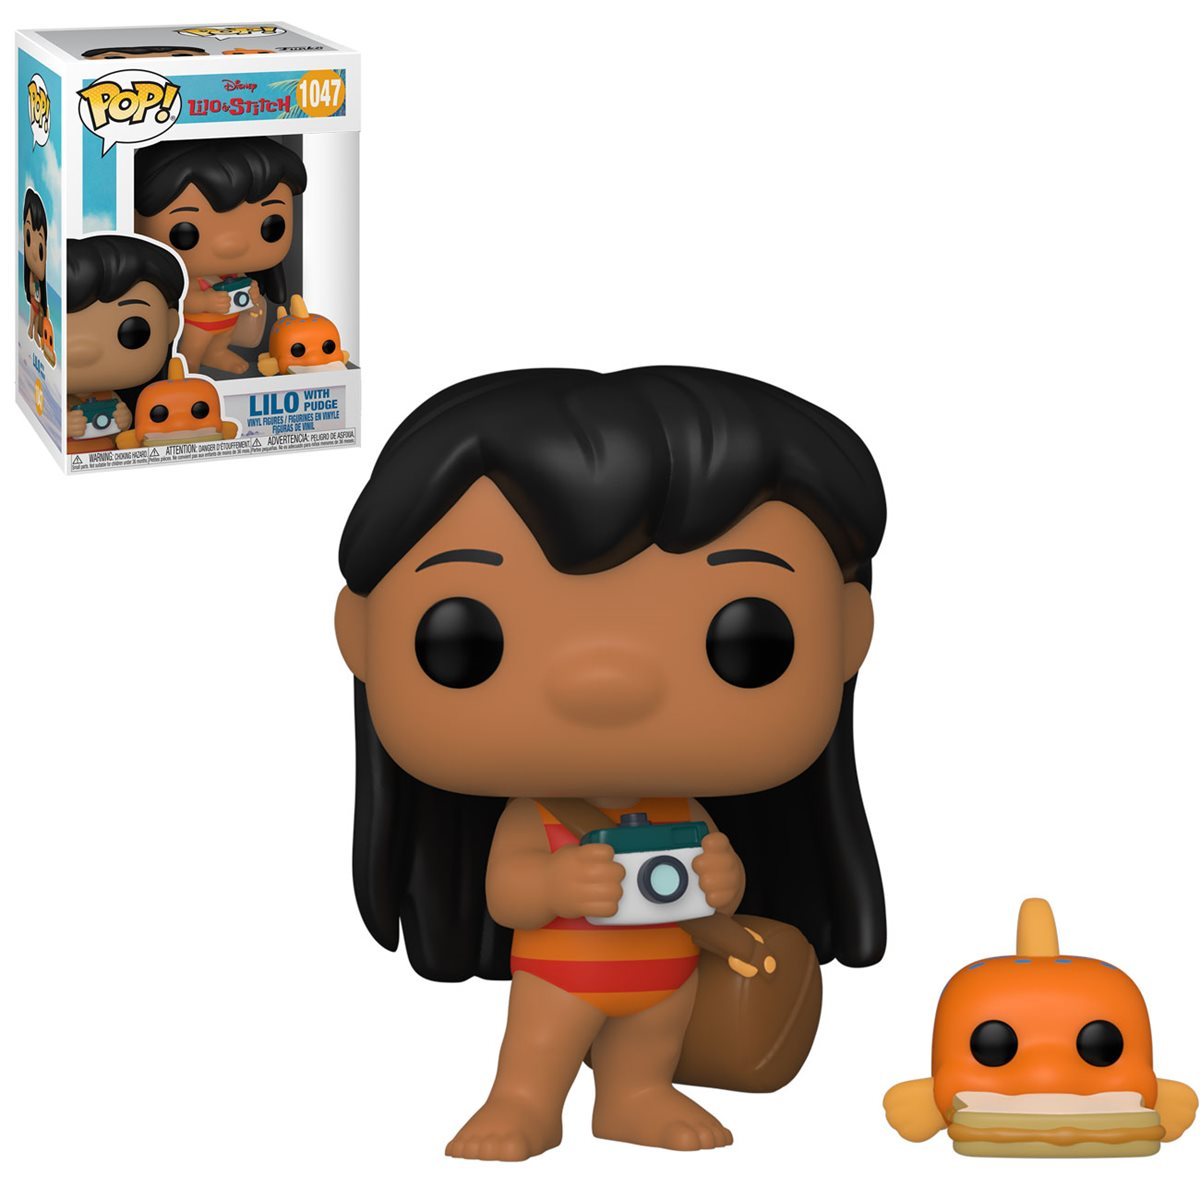 PRÉ VENDA: Funko Pop! Lilo Com Pudge: Lilo & Stitch Disney #1047 - Funko